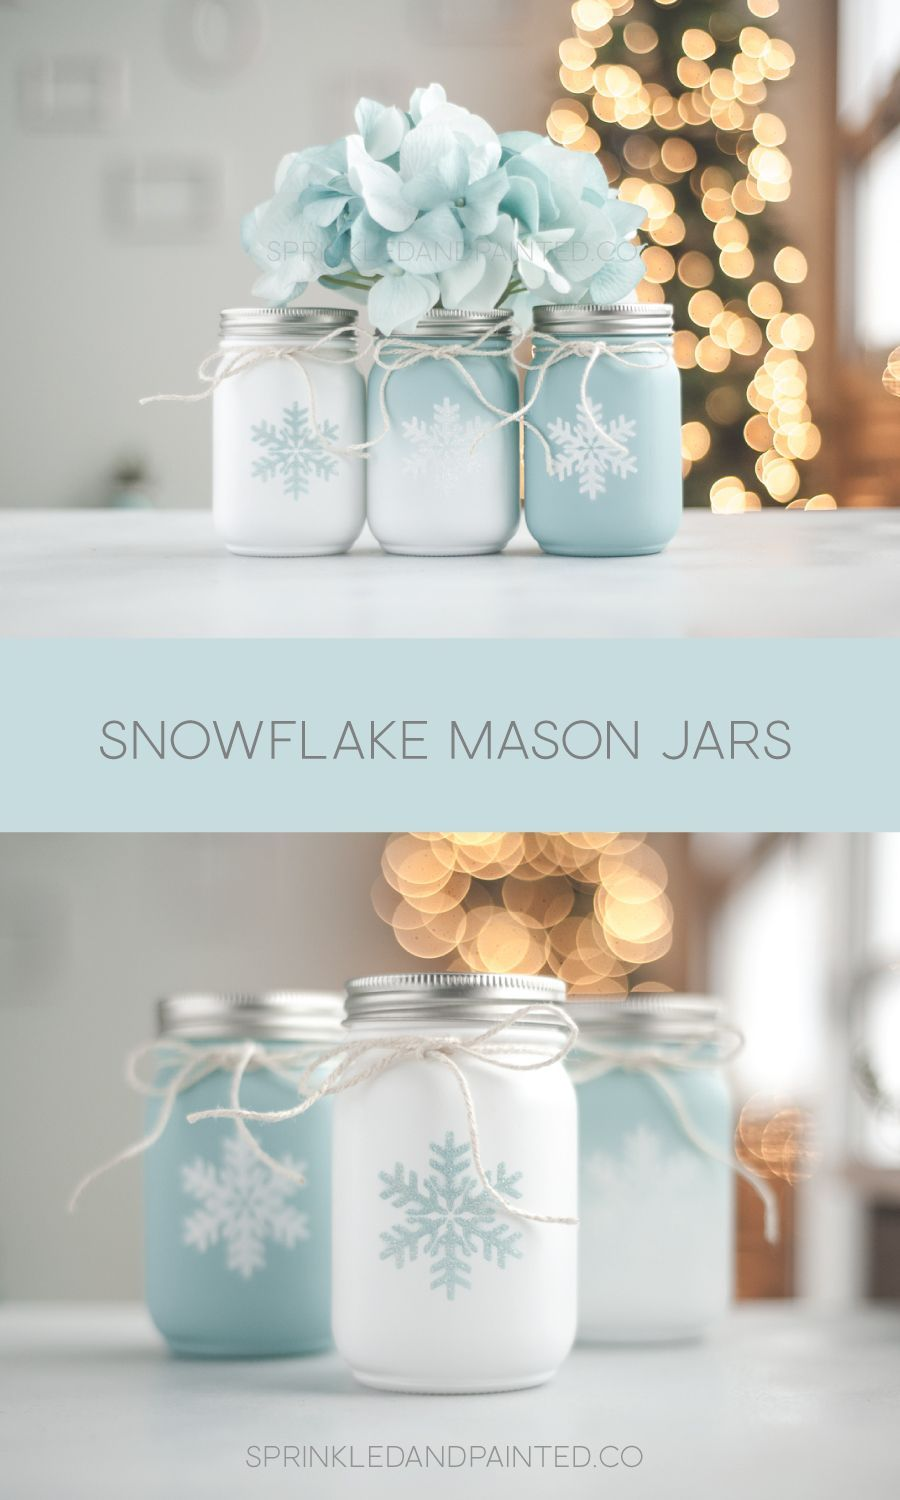 Set of 3 Christmas Holiday Decor Vases, Winter Wedding, Aqua Blue and White Painted Mason Jars Snowflake Decor, Aqua Christmas Decor